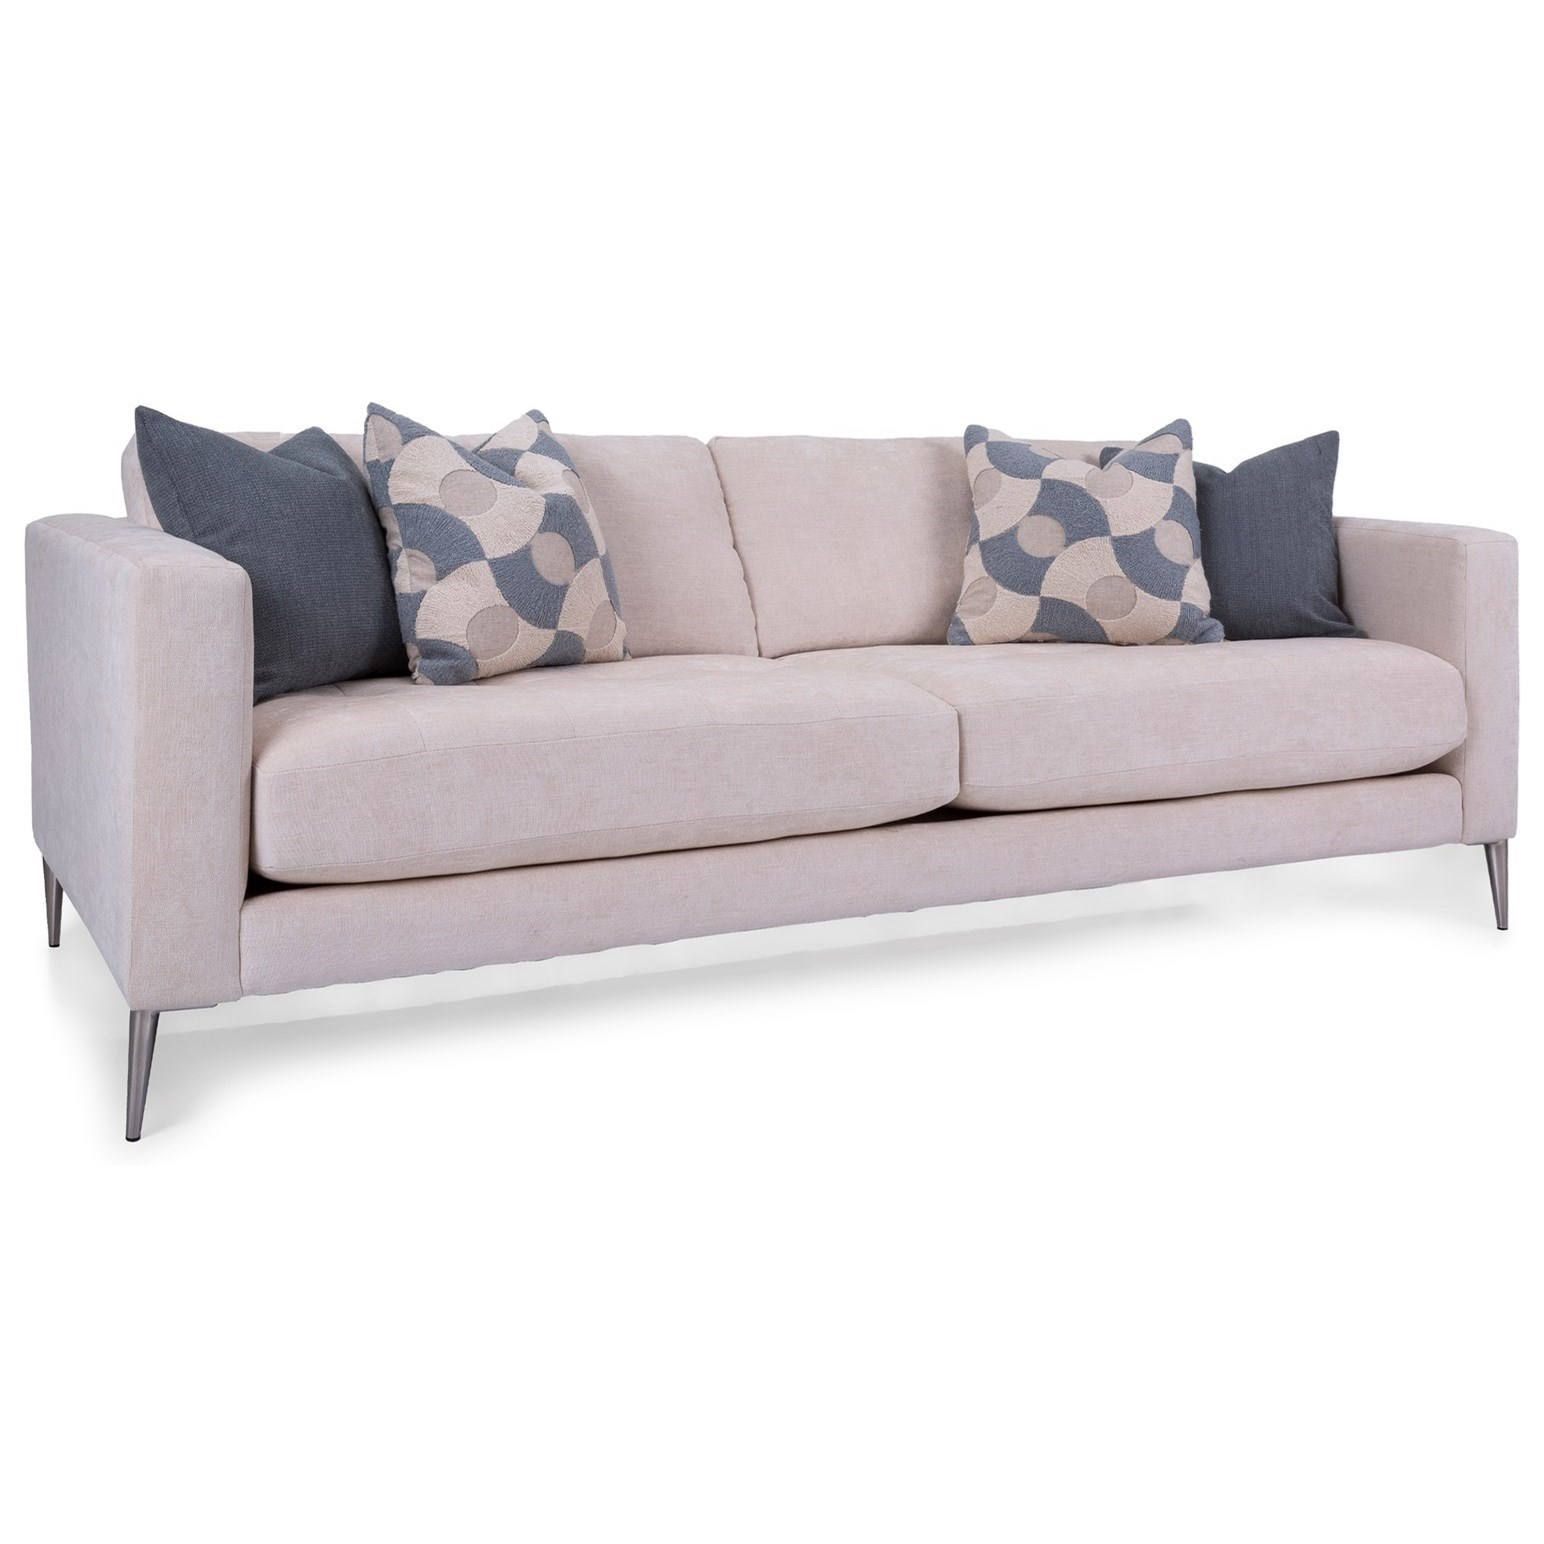 3795 Loveseat by Decor-Rest at Rooms for Less